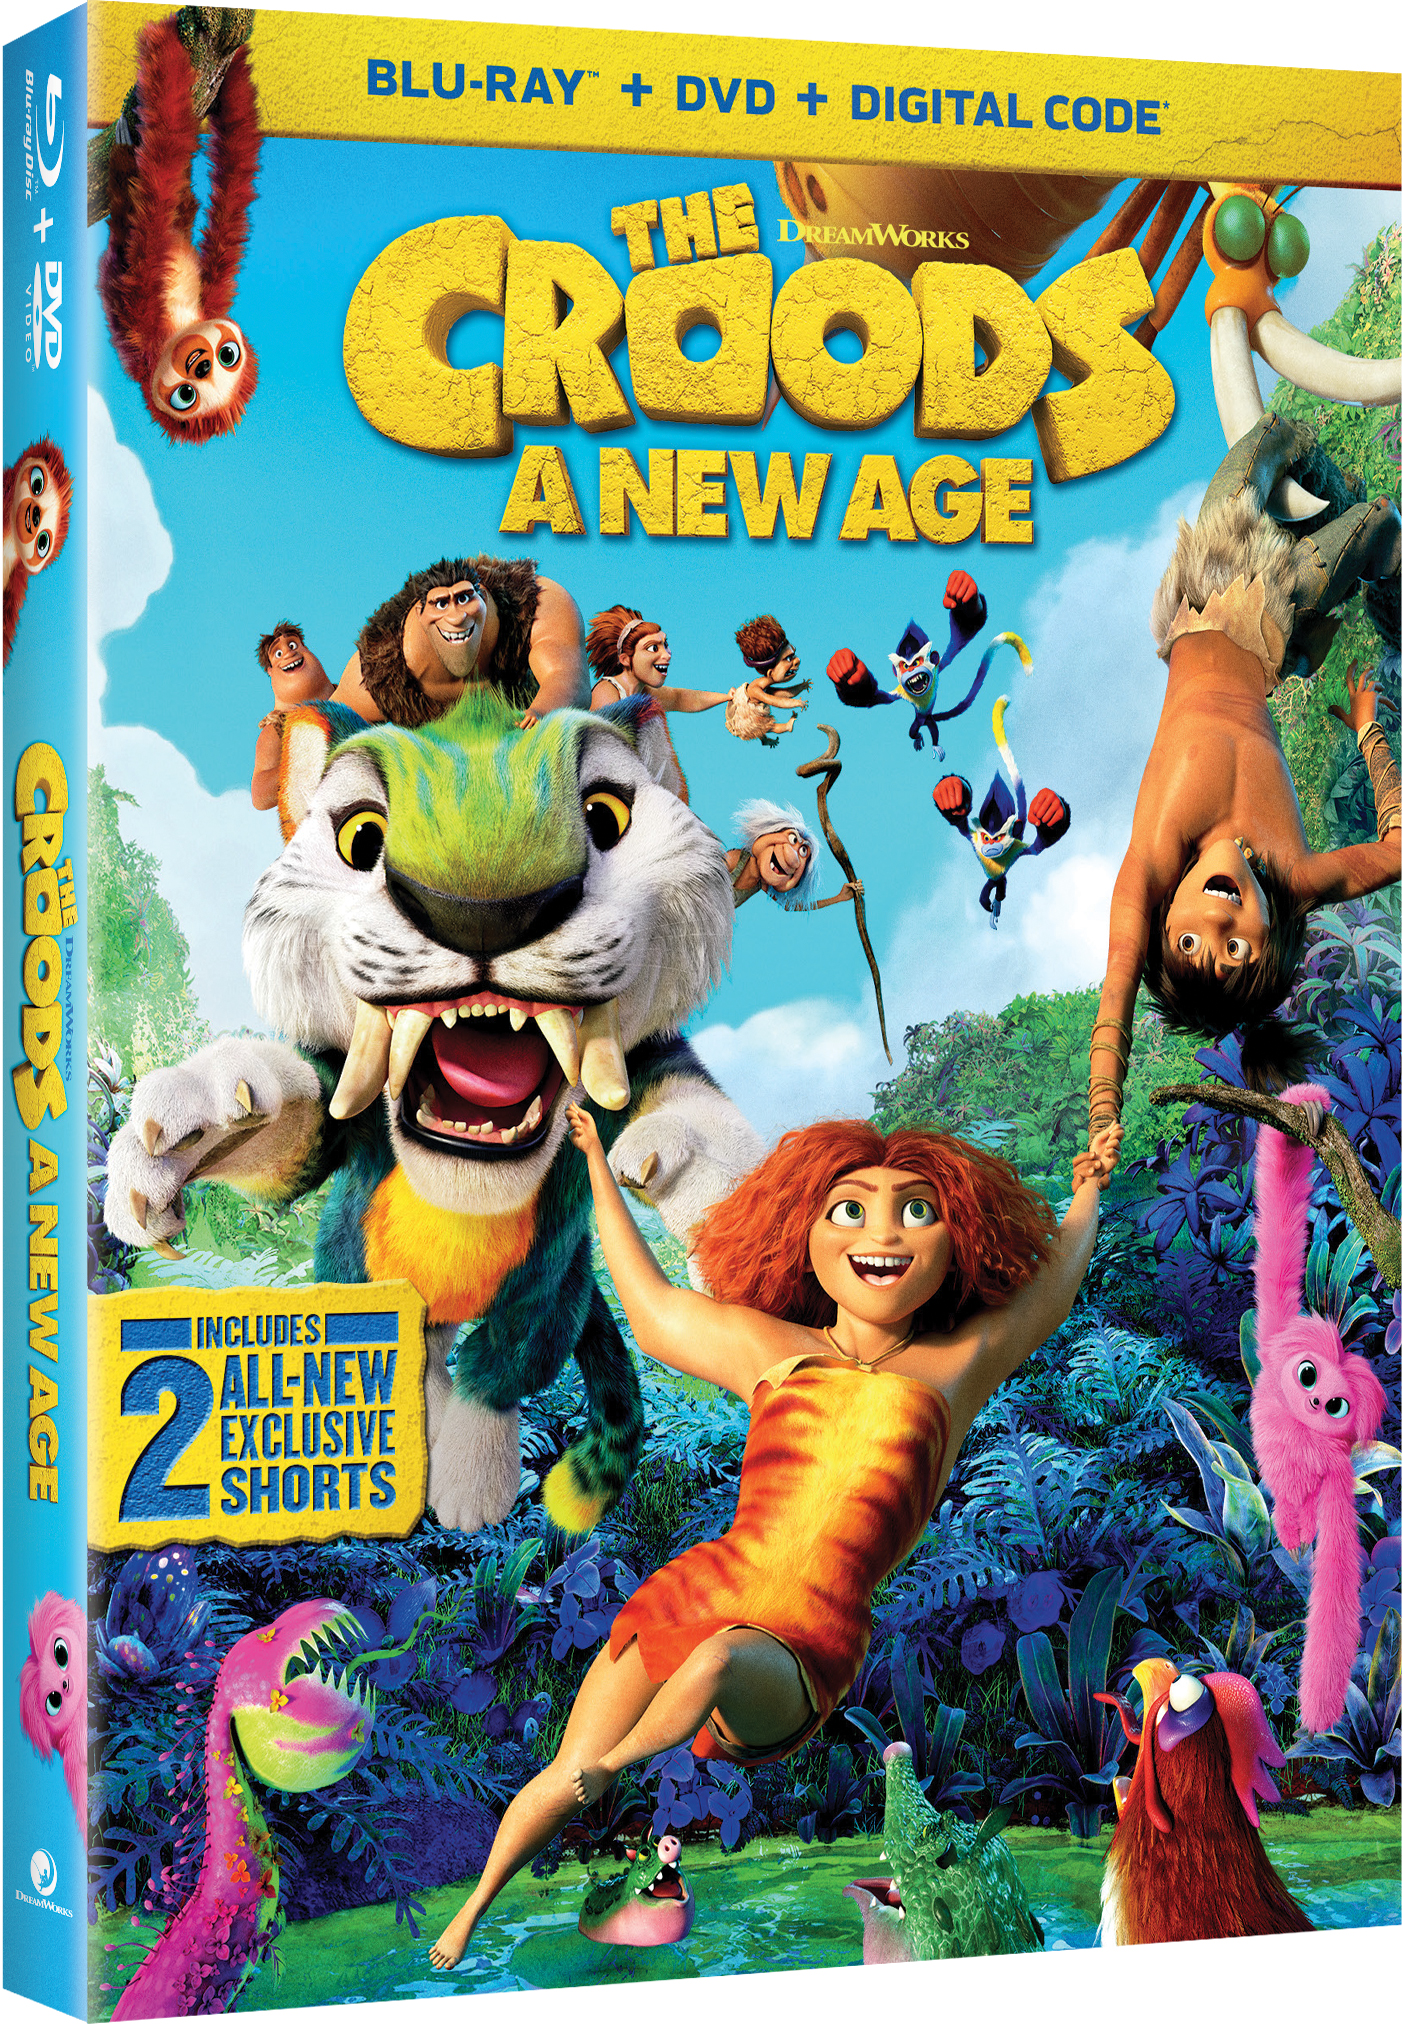 THE CROODS: A NEW AGE Digital Giveaway